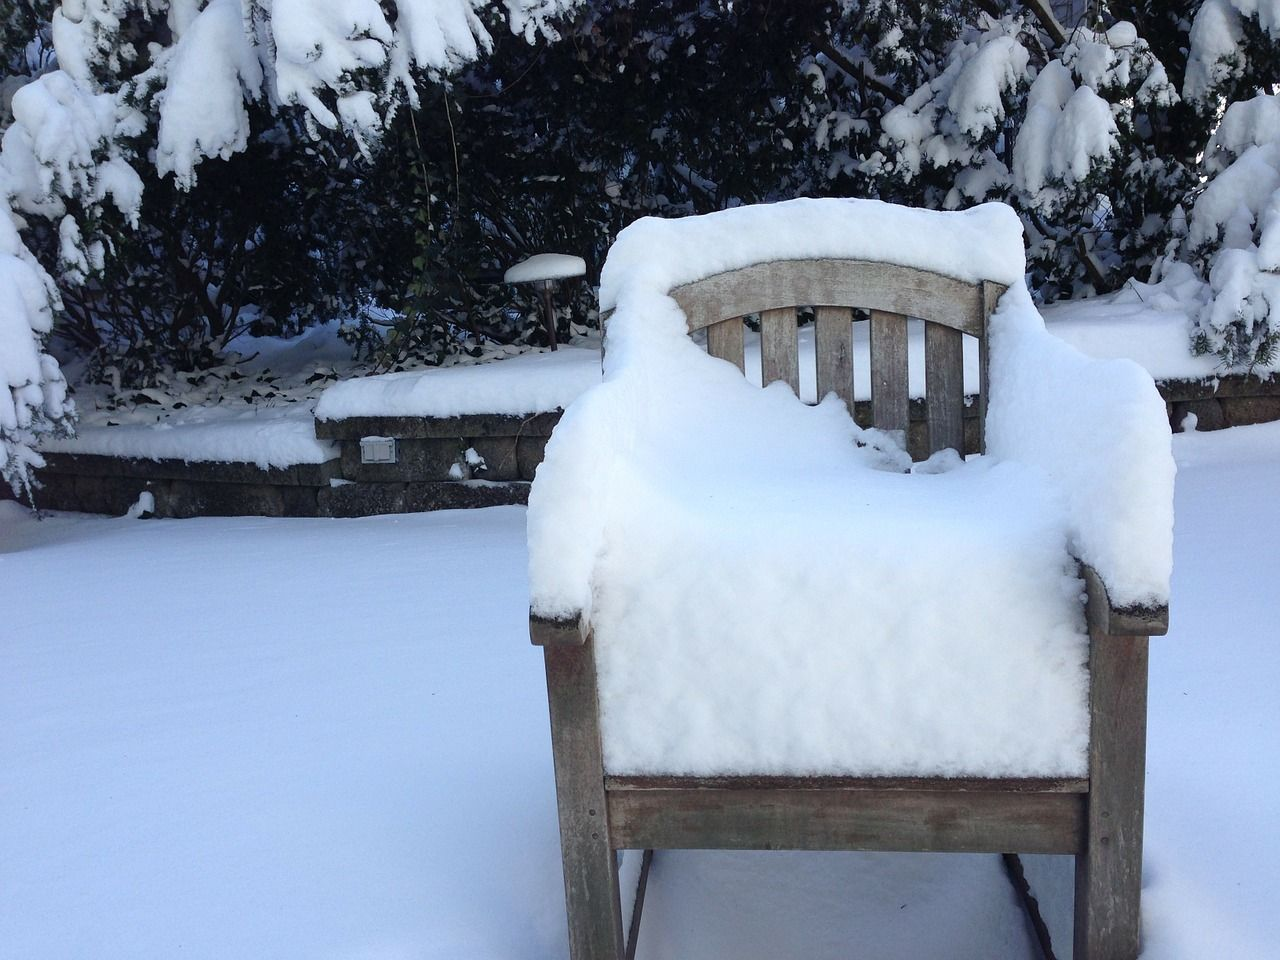 Planning for Winter with Outdoor Patio Furniture Covers ... on Patio Cover Ideas For Winter id=69165